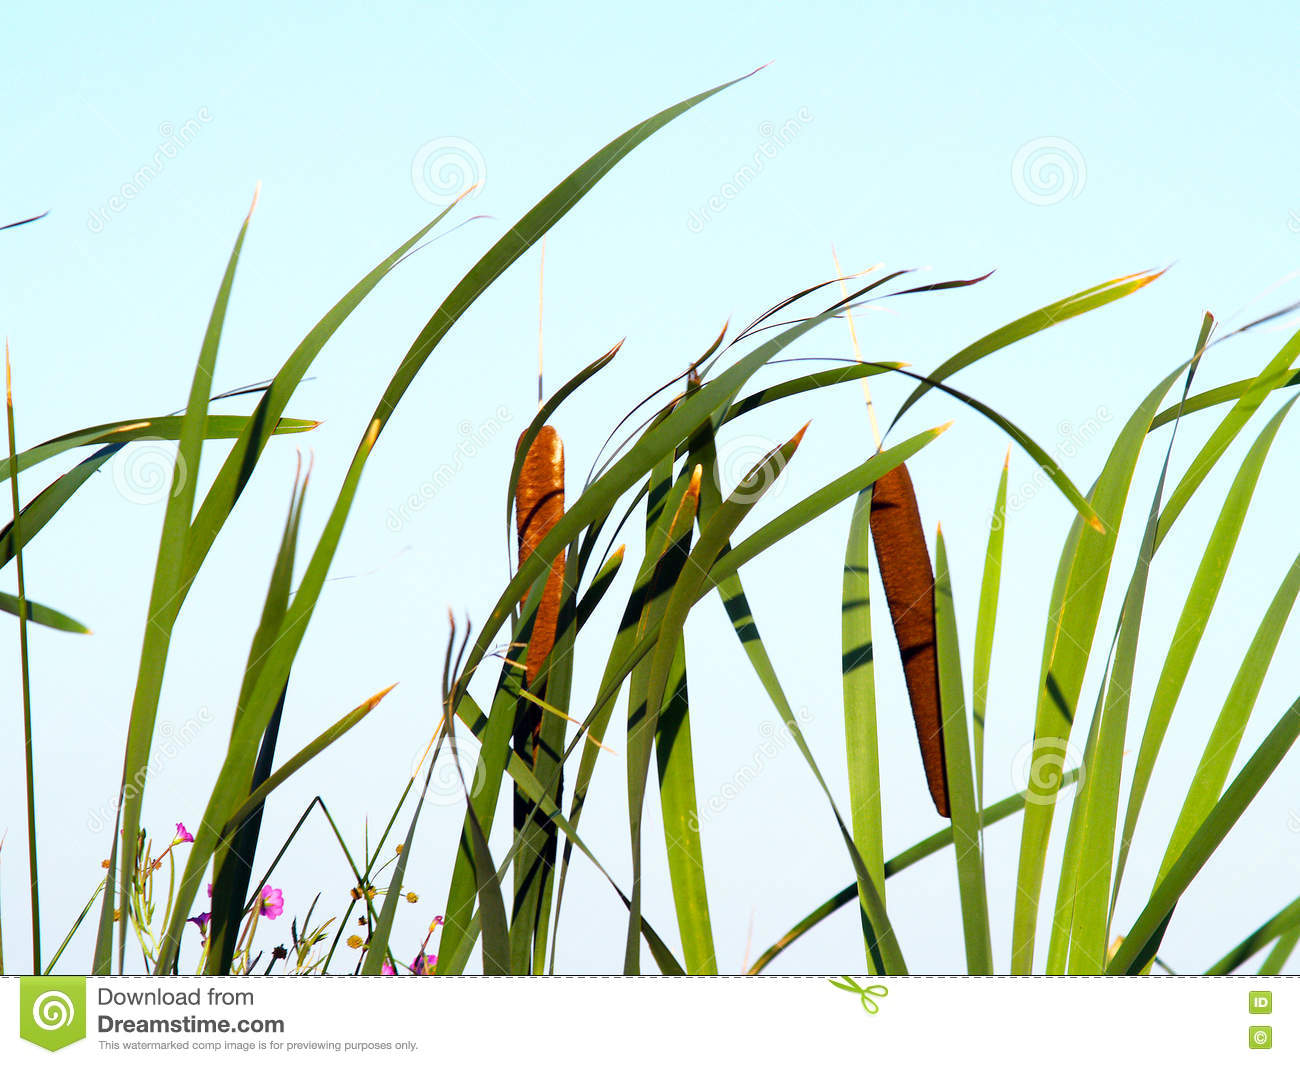 Cattails with clear sky